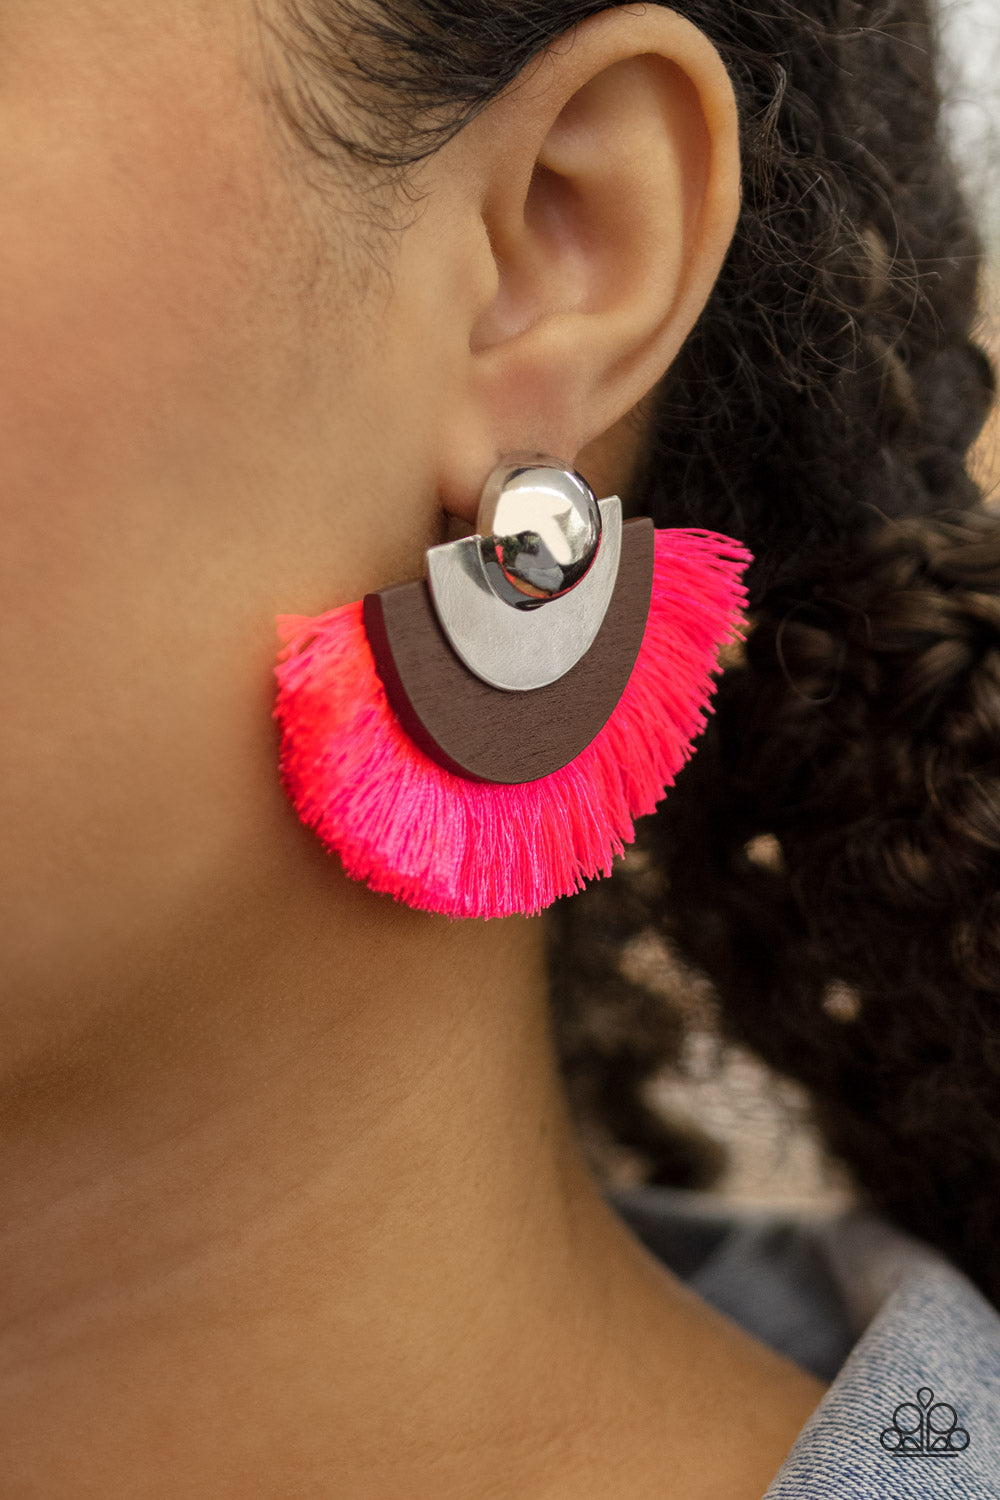 Paparazzi Jewelry & Accessories - Fan The FLAMBOYANCE - Pink Earrings. Bling By Titia Boutique